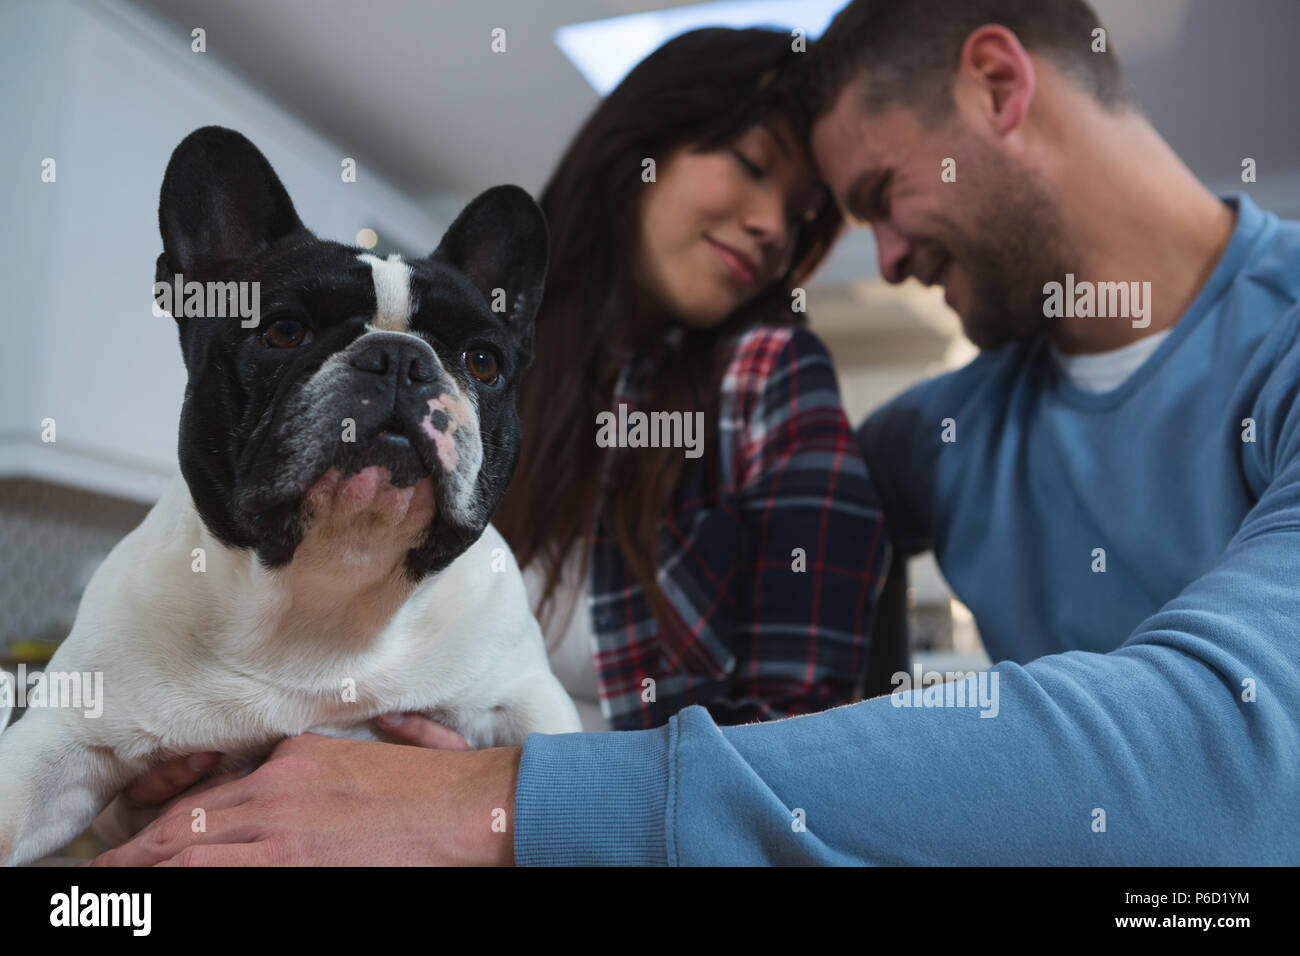 Couple playing with their pet dog in kitchen at home Stock Photo